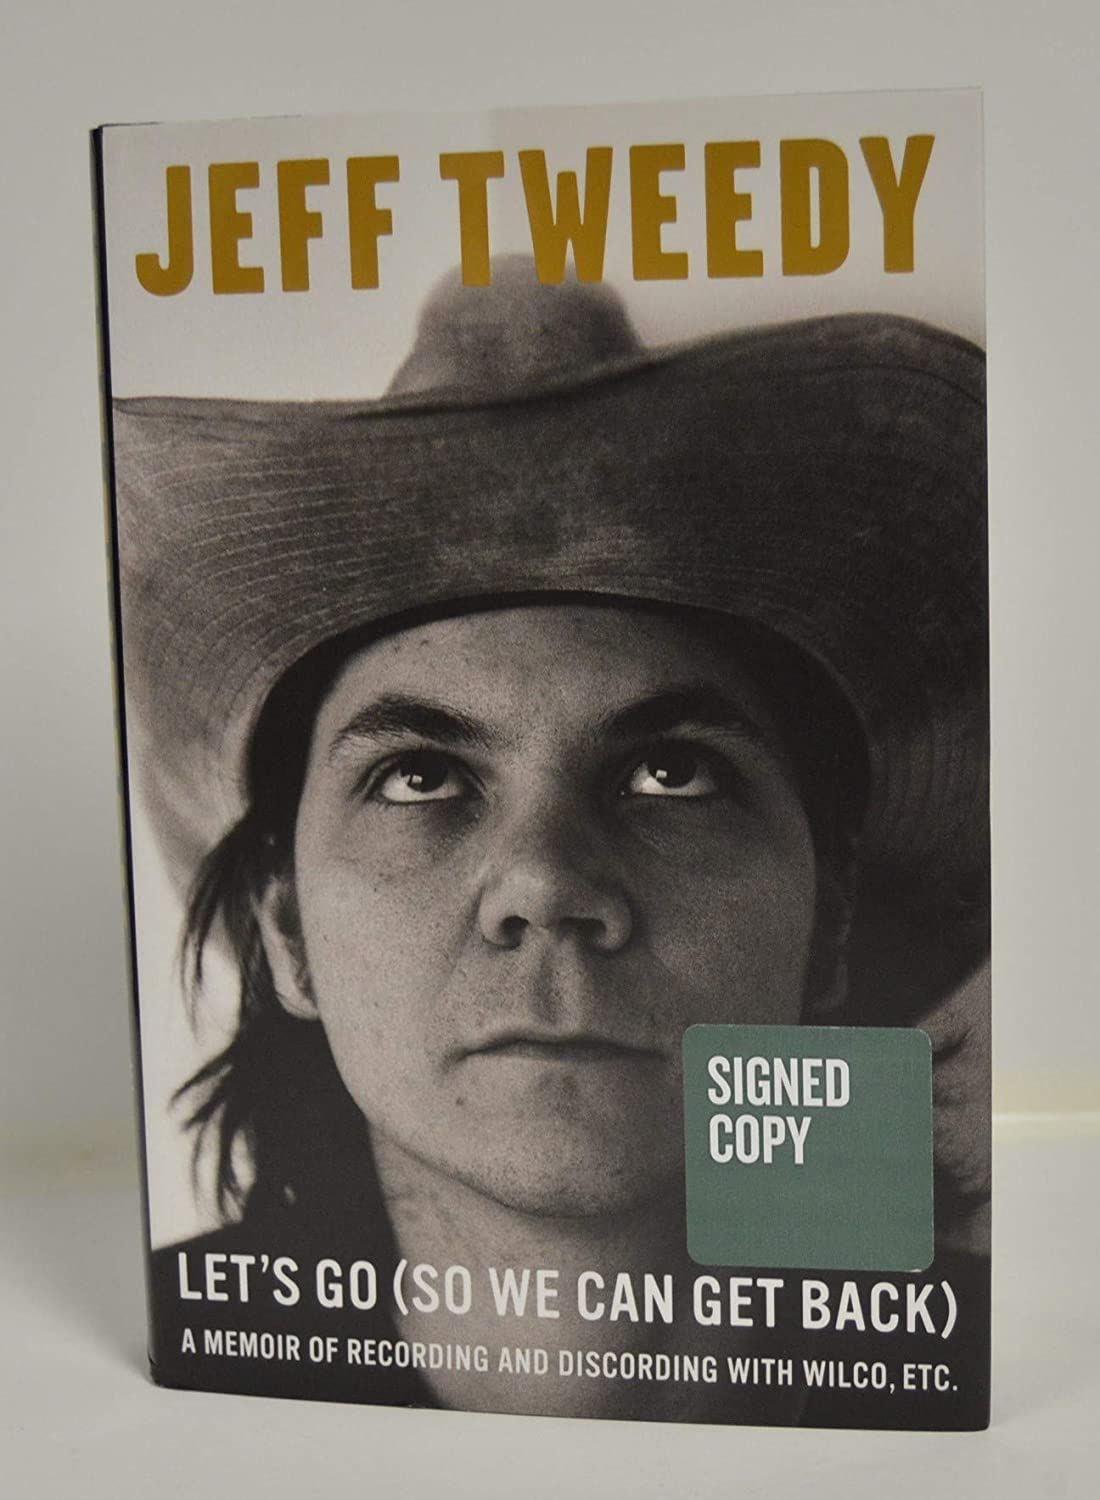 JEFF TWEEDY signed'Let's Go (So We Can Get Back): A Memoir of Recording and Discording with Wilco, Etc.' Hardcover Book FIRST EDITION Etc. Hardcover Book FIRST EDITION